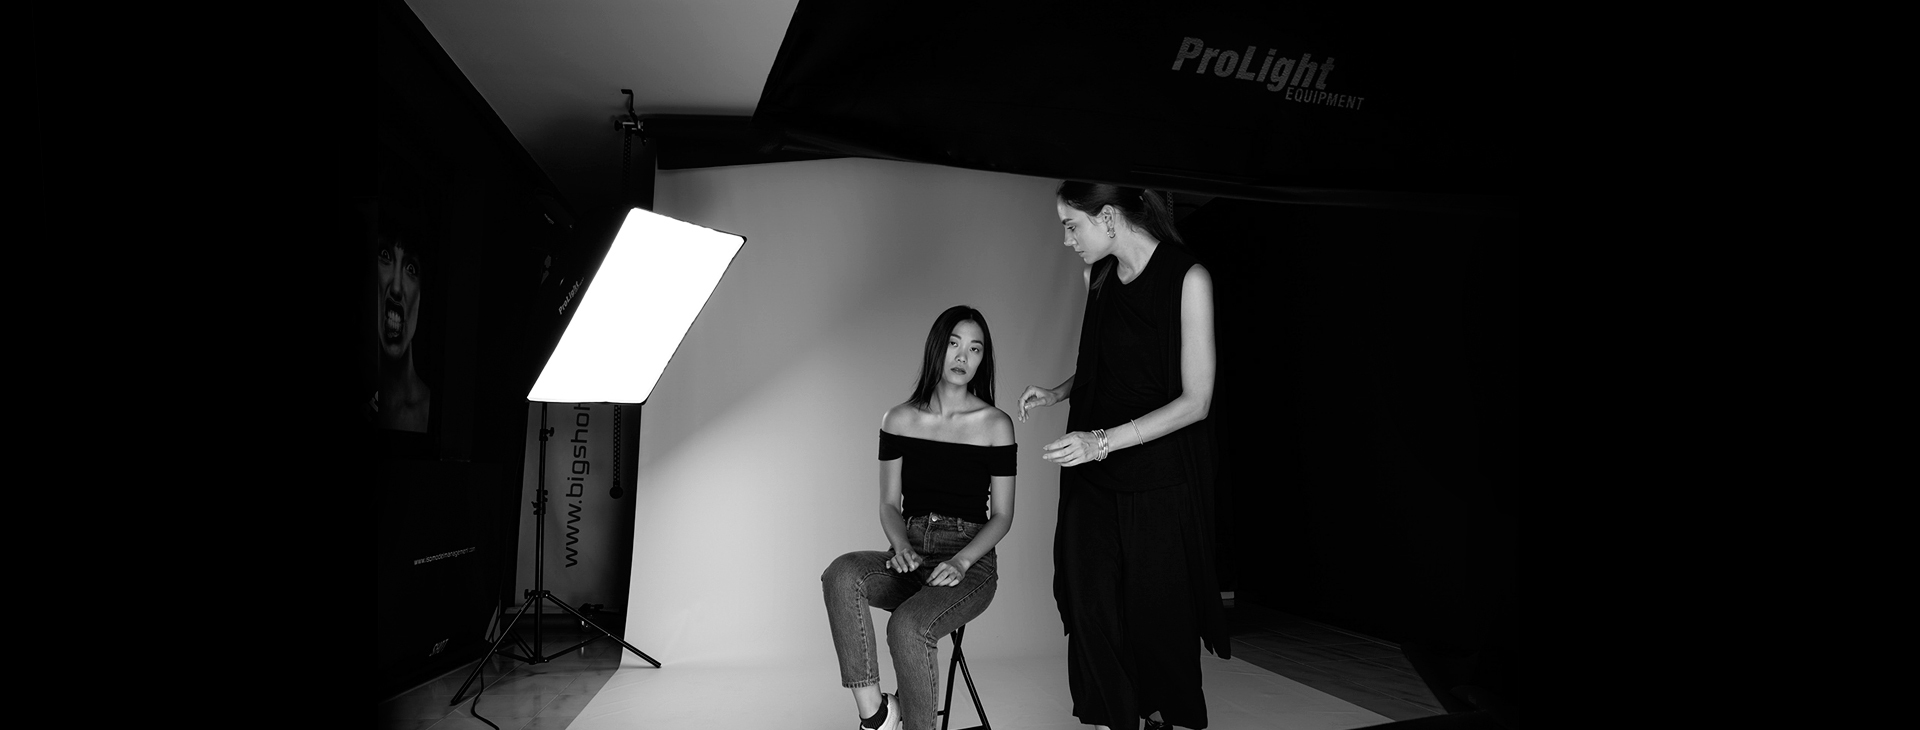 Prolight Backstage Bigshot360